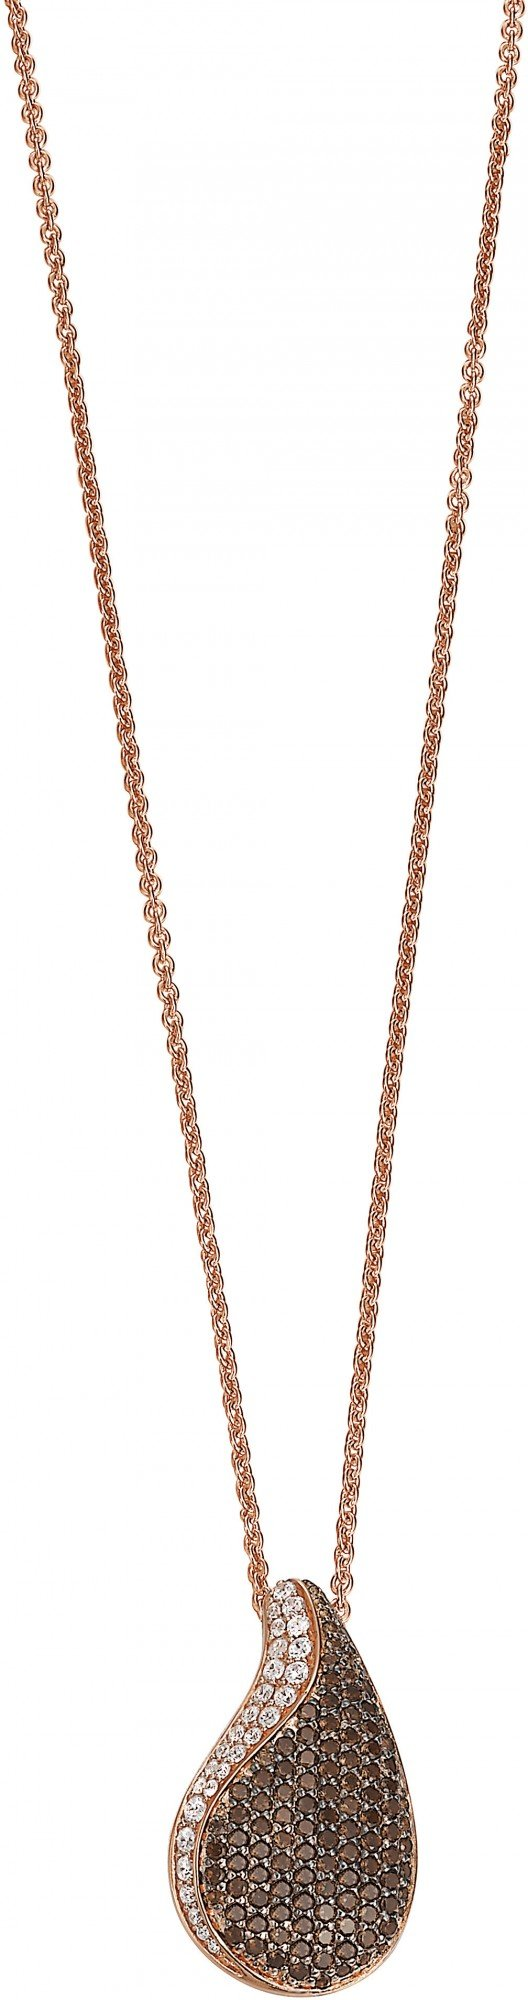 Esprit Collection Jewelry Peritau ELNL92231C800 Necklace for her Rhodanized Sterling Silver